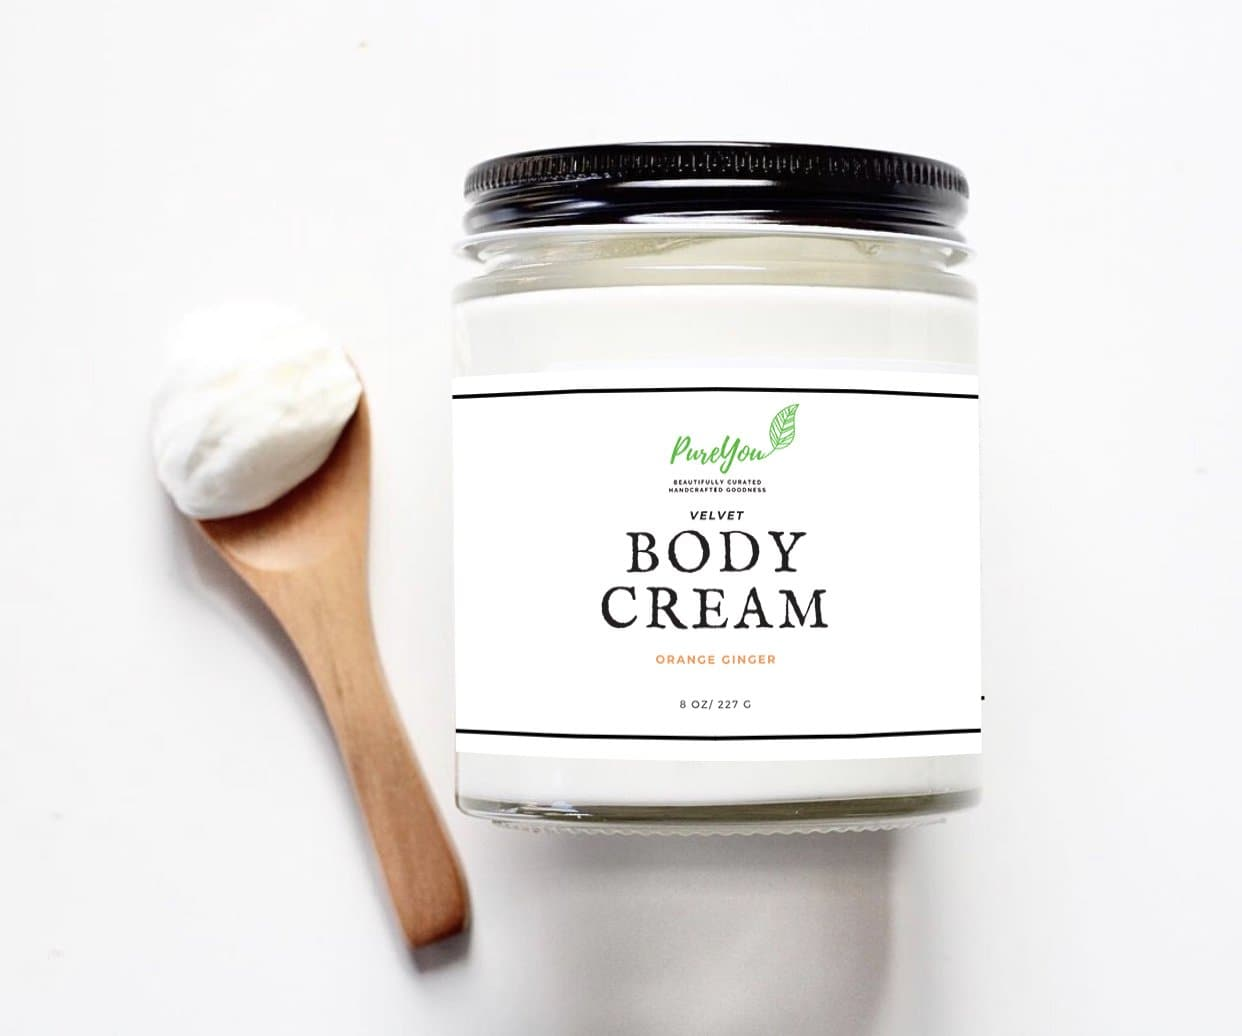 Orange Ginger Velvet Body Cream